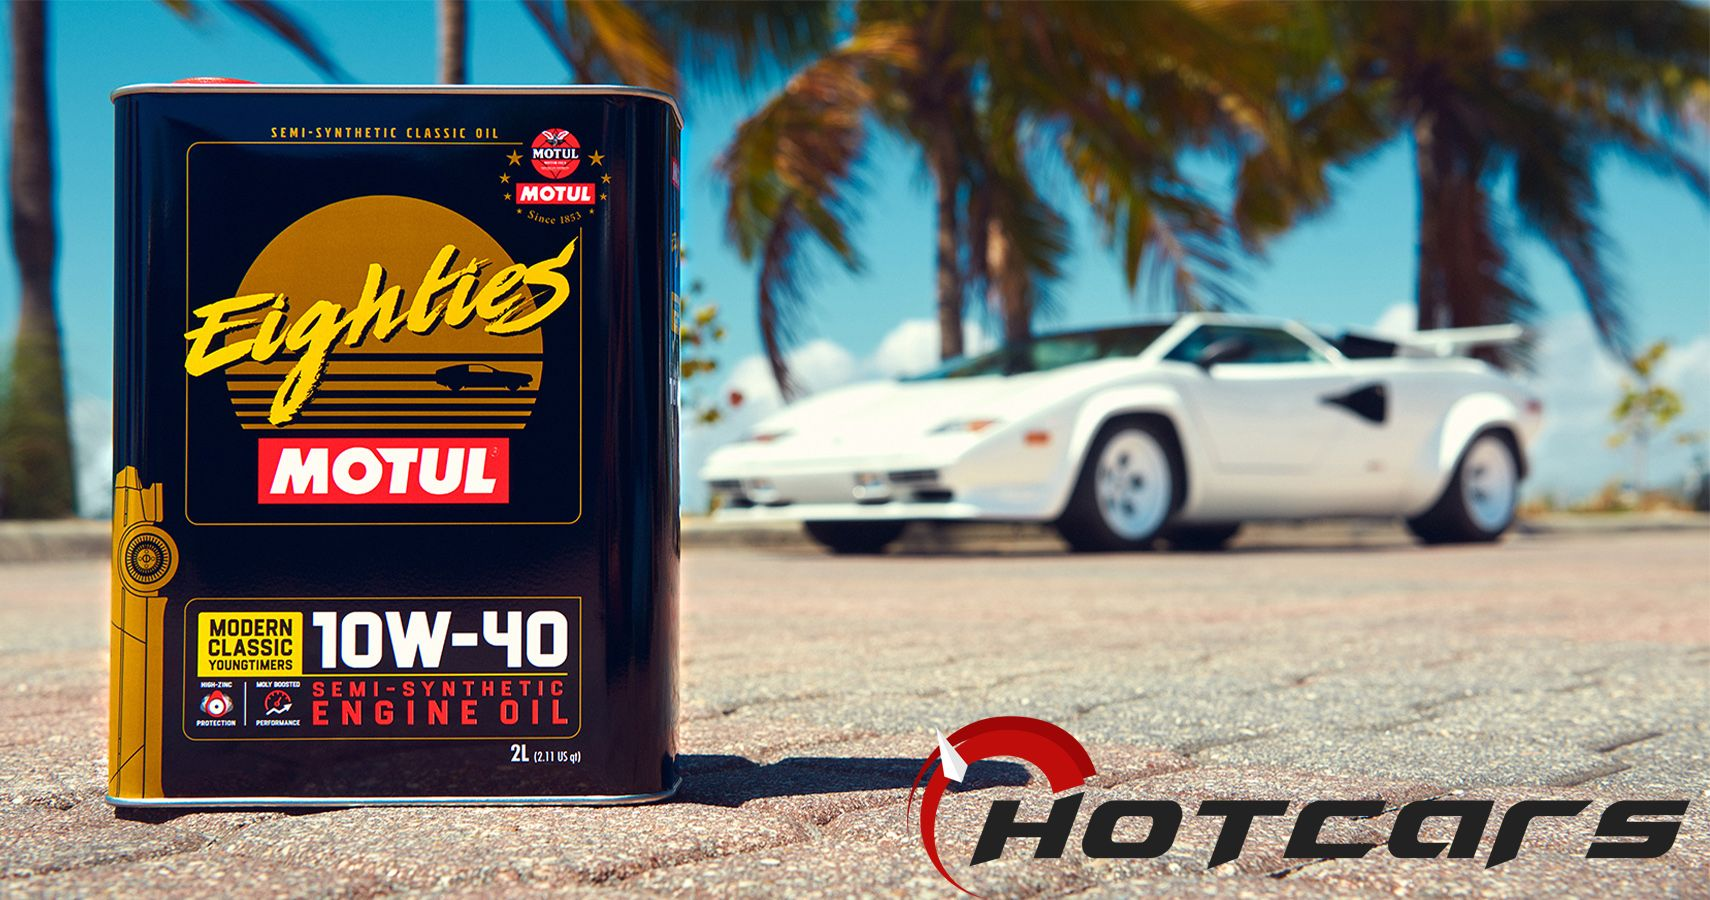 EXCLUSIVE: How Motul Developed New Classic Line Oils For The American Enthusiast